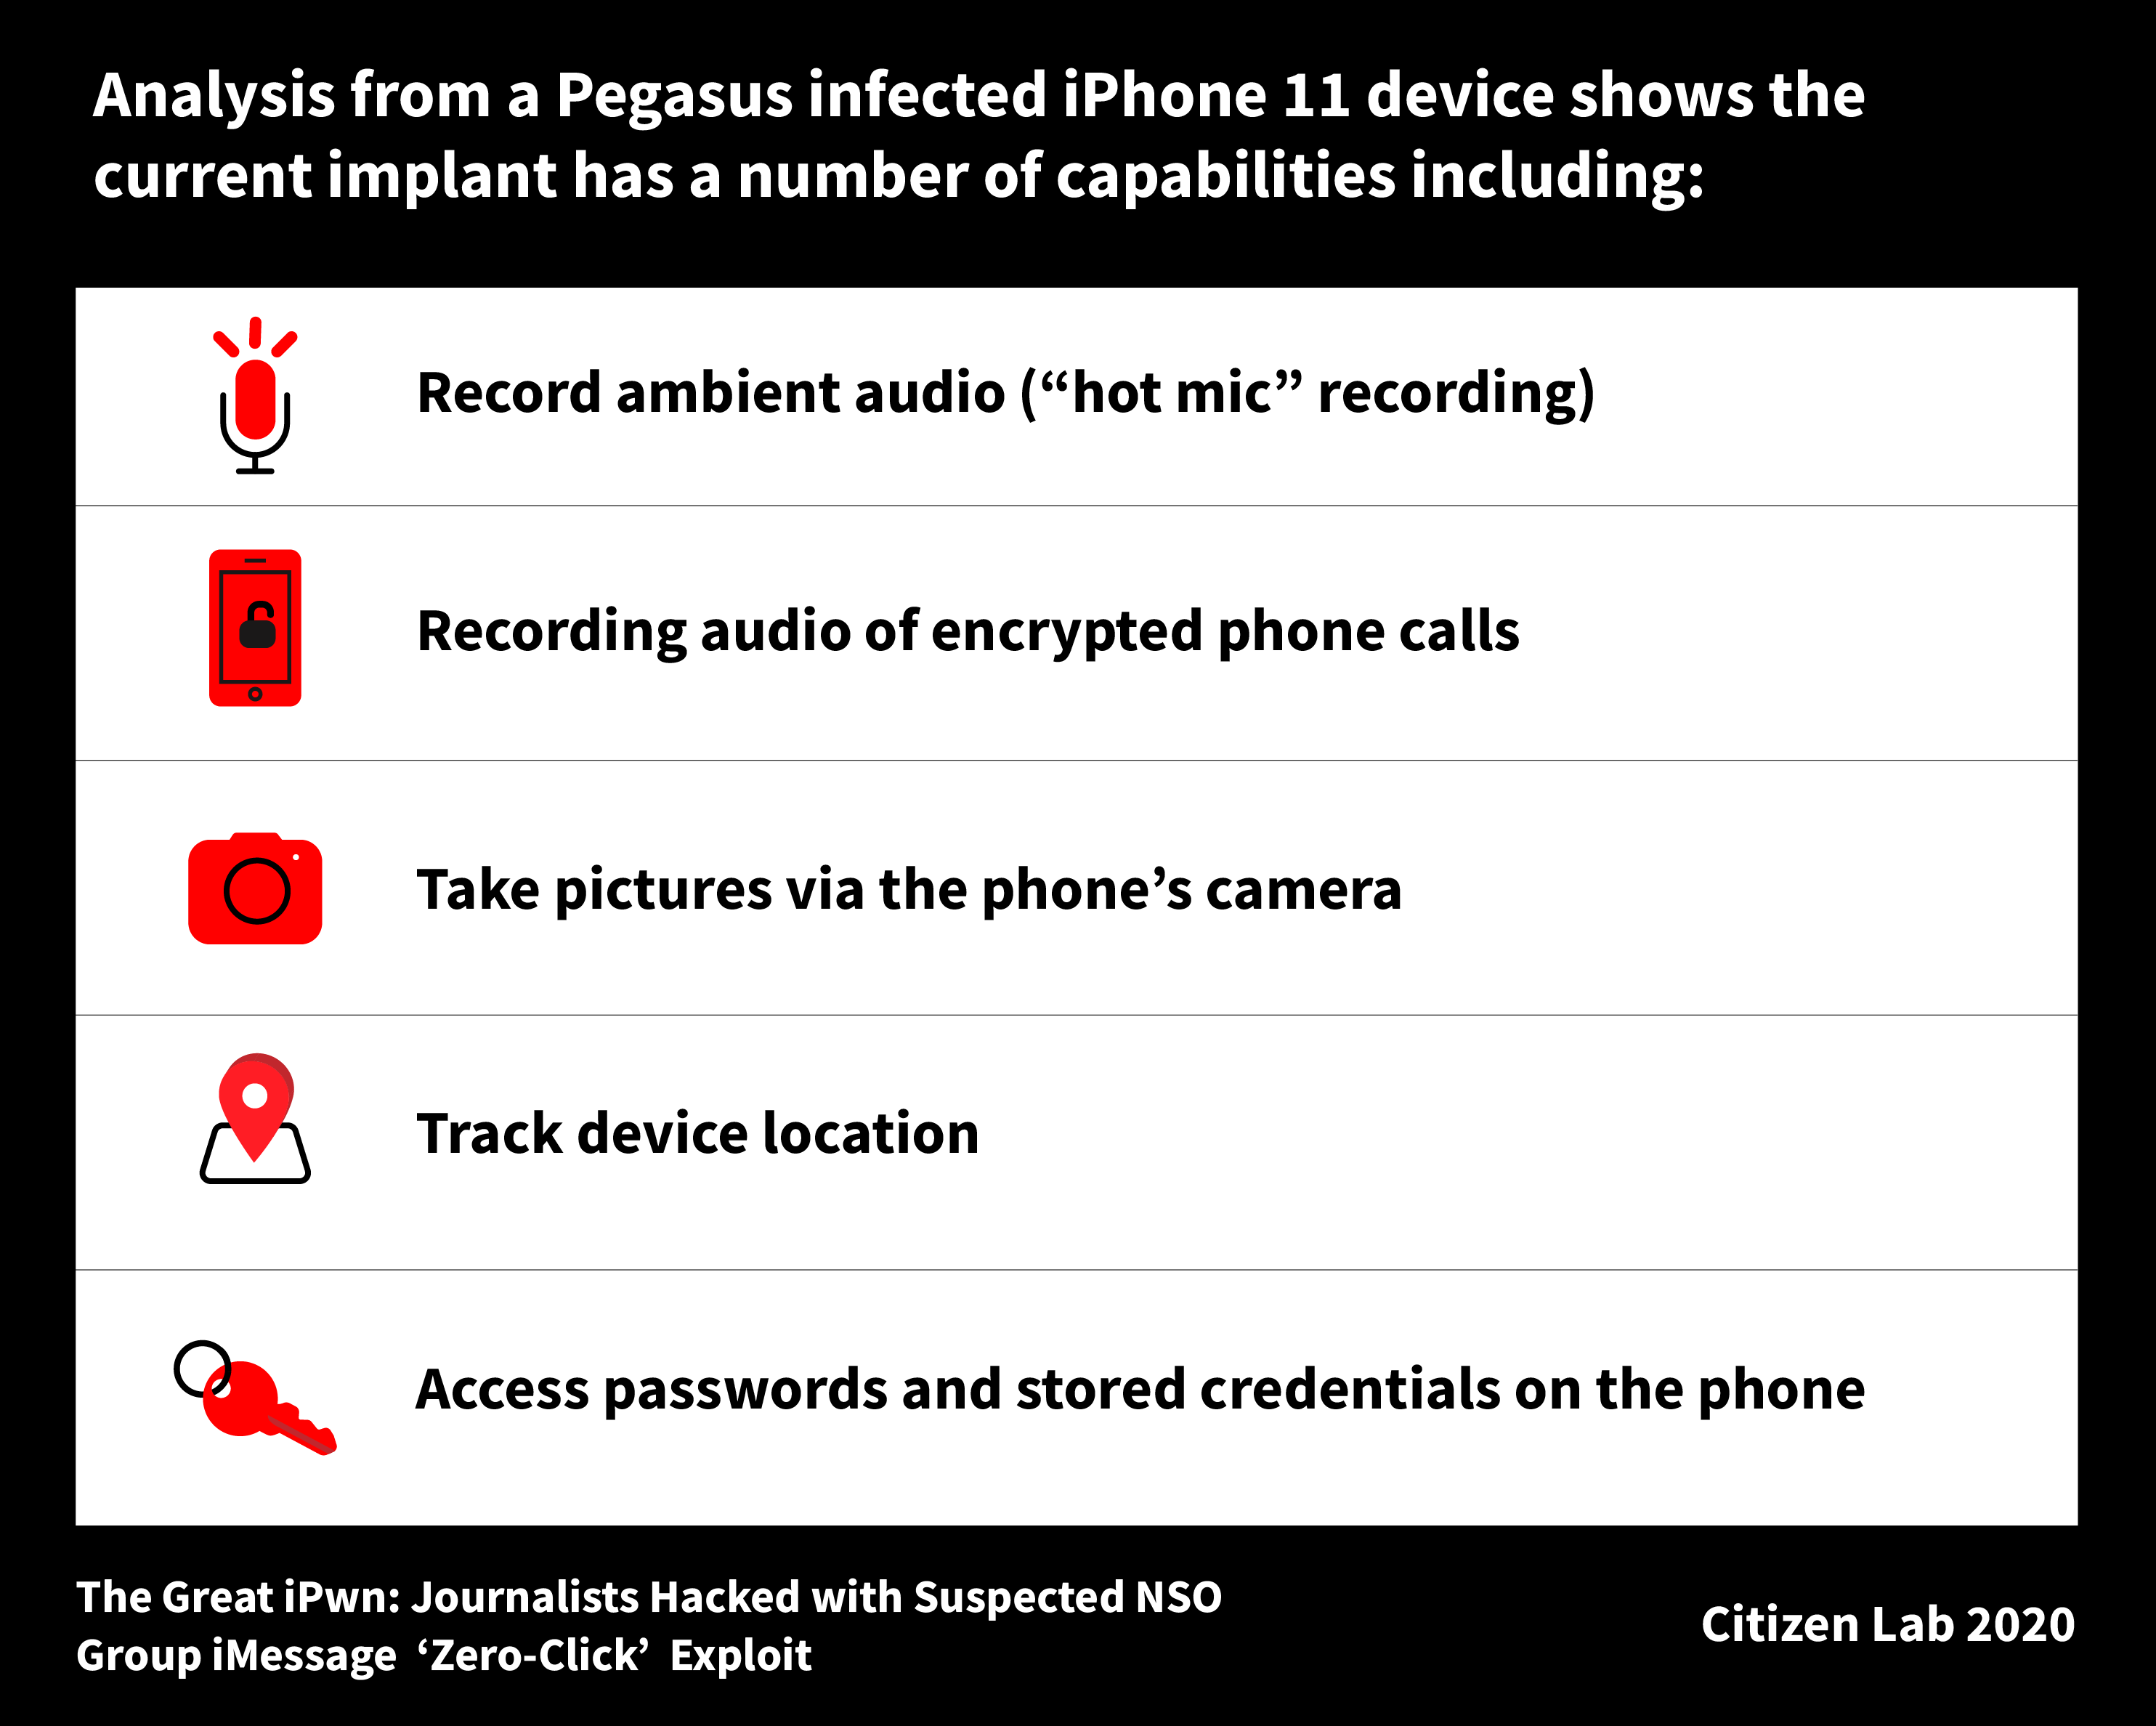 Some Pegasus implant capabilities observed on an infected device.